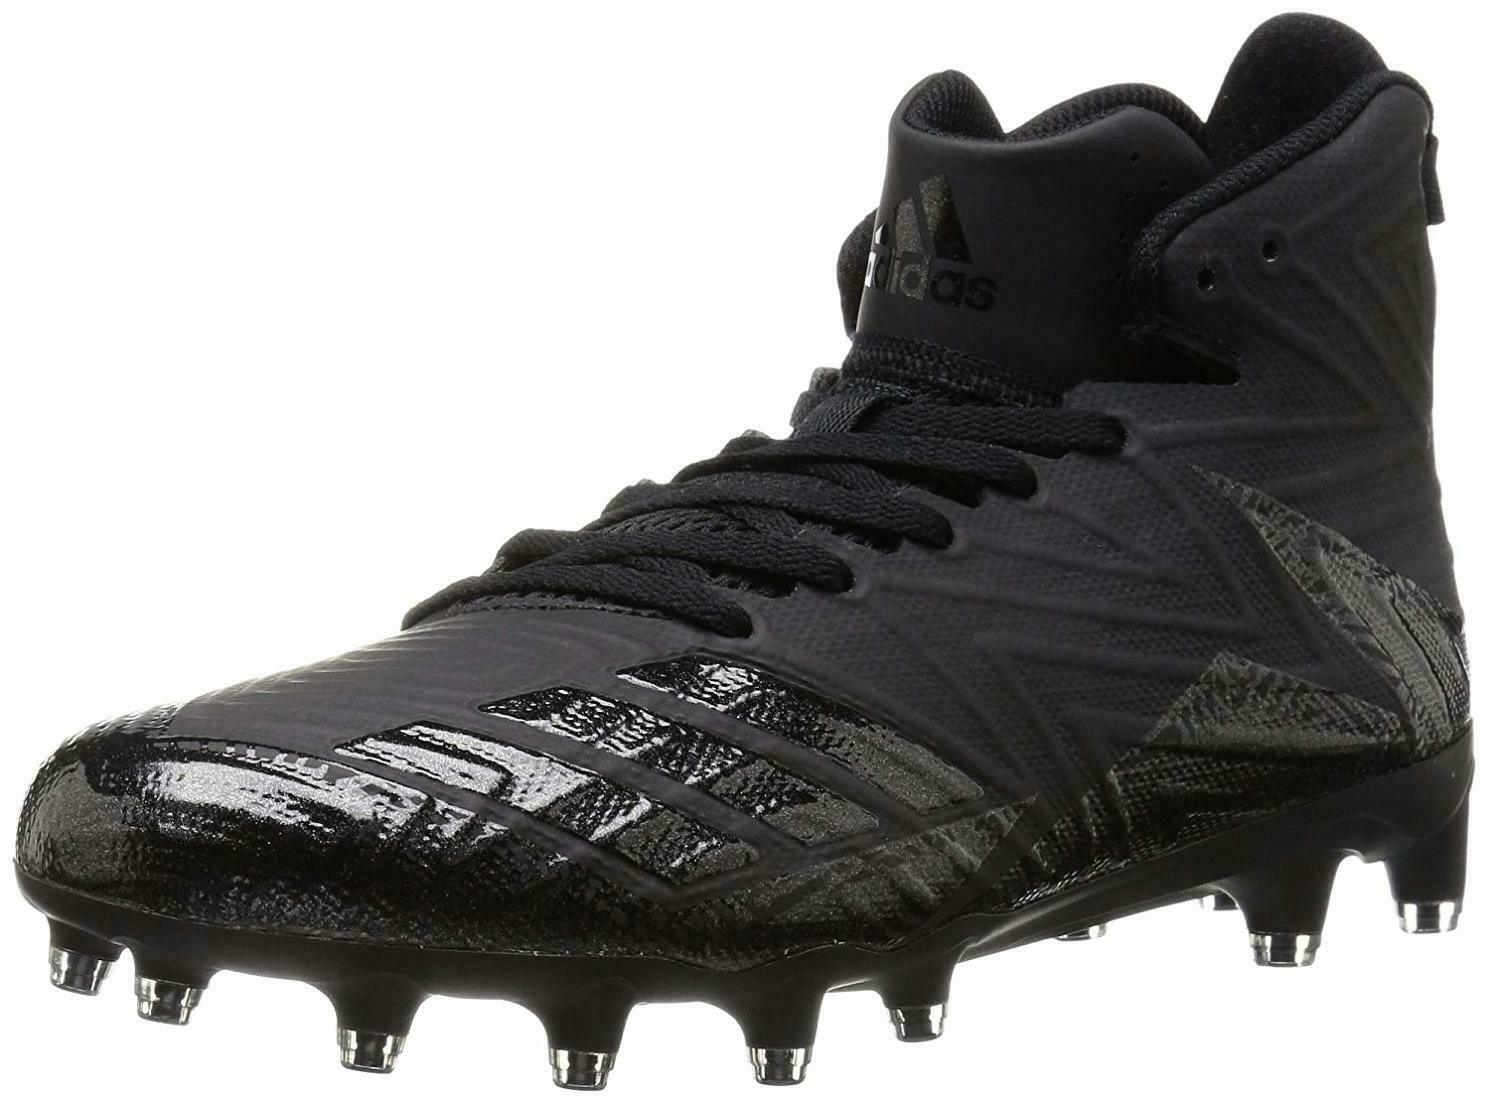 Adidas Men's Freak X Carbon Mid FTball shoes - Choose SZ color